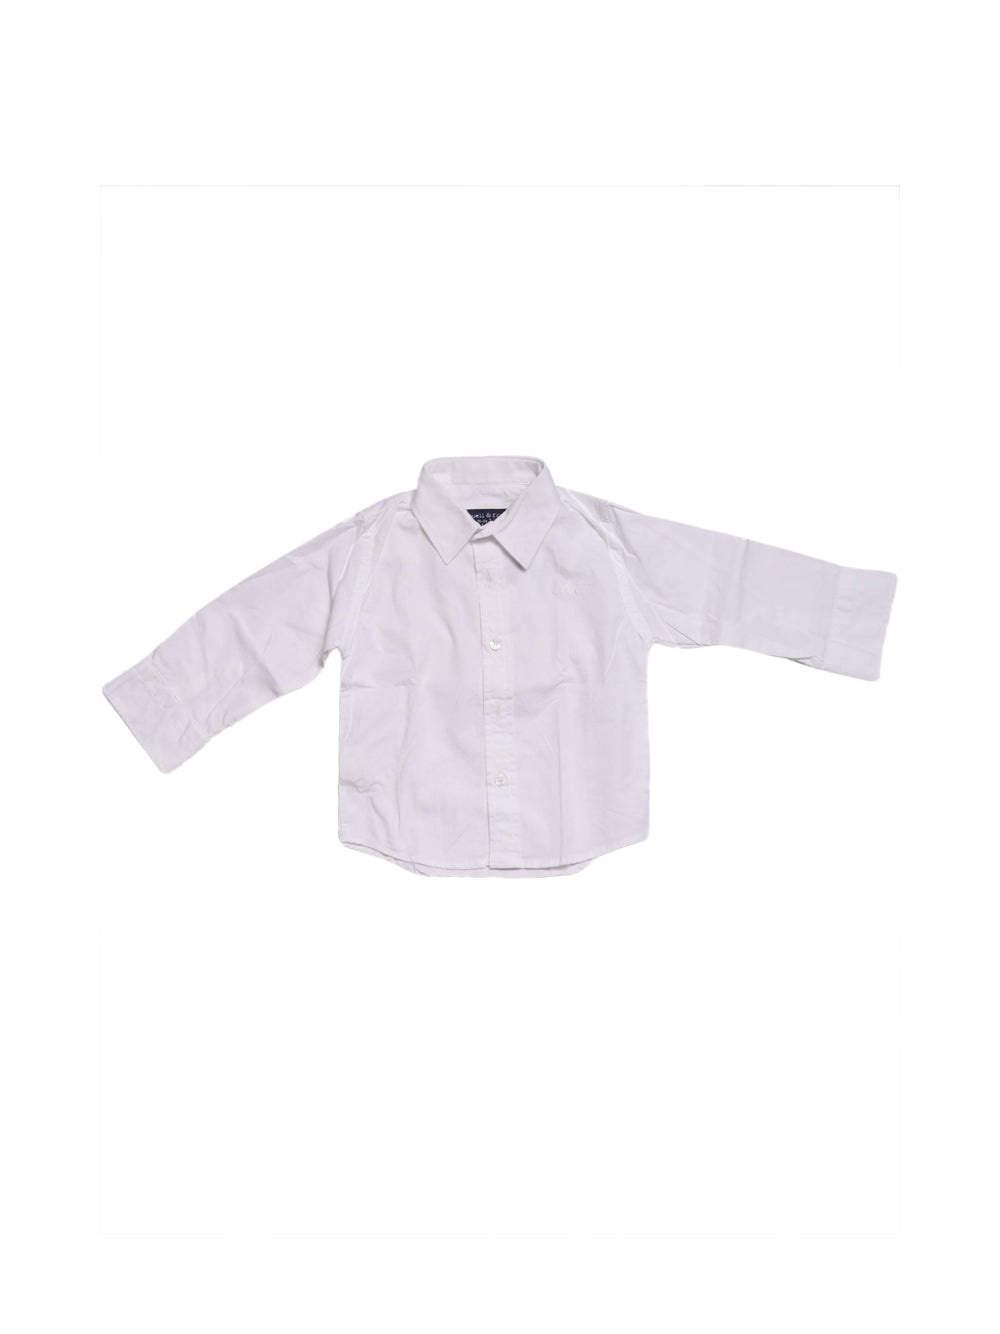 Front photo of Preloved Manuell & Frank White Boy's shirt - size 12-18 mths